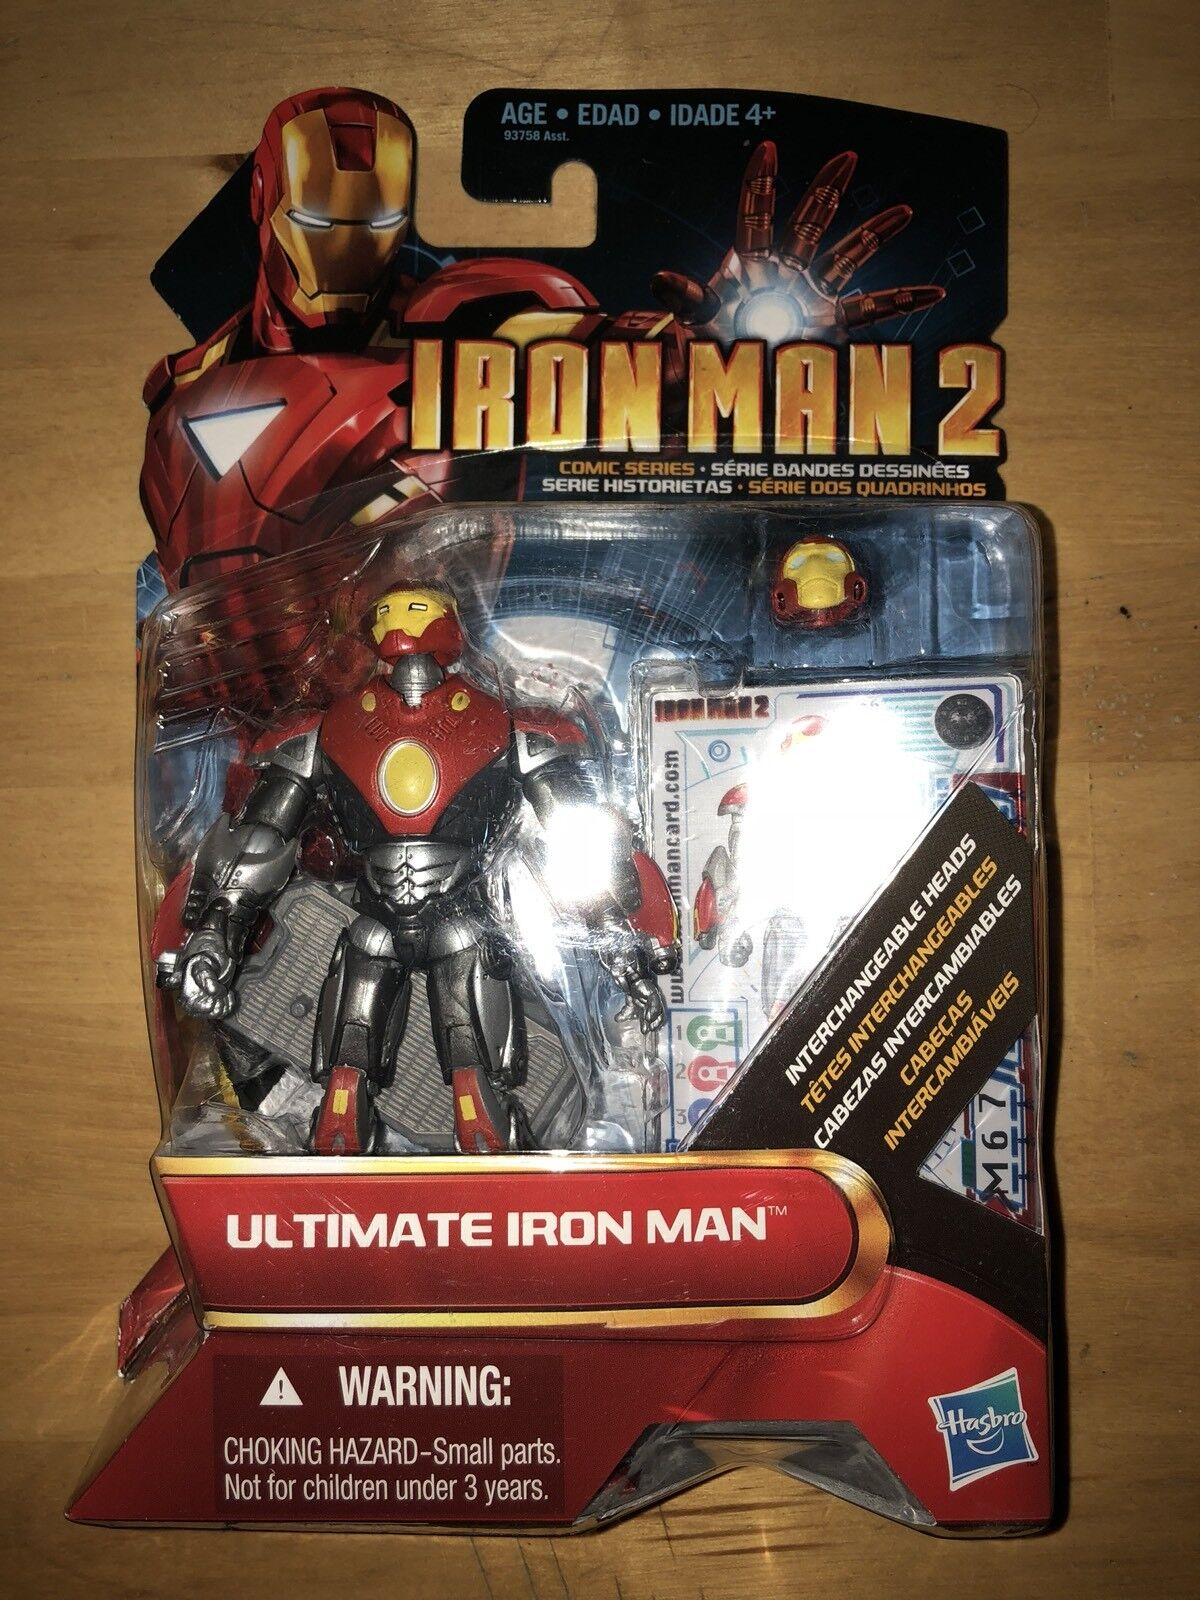 Marvel IRON MAN 2 Ultimate Iron Man AF IM2 4